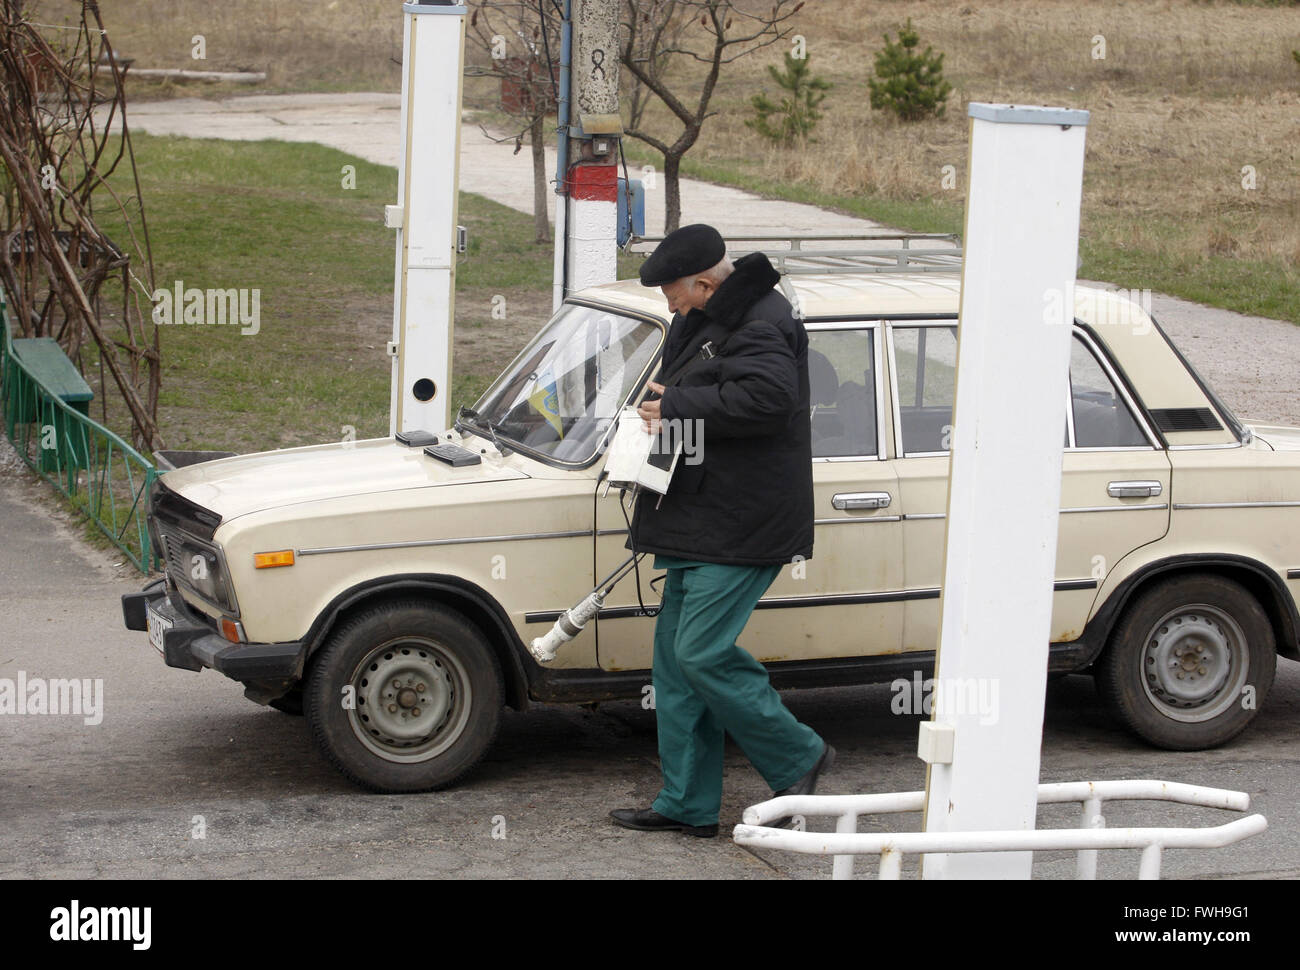 An employee checks car for radiation levels as they leave Chernobyl zone on April 21, 2015. 21st Apr, 2015. Ukrainians - Stock Image